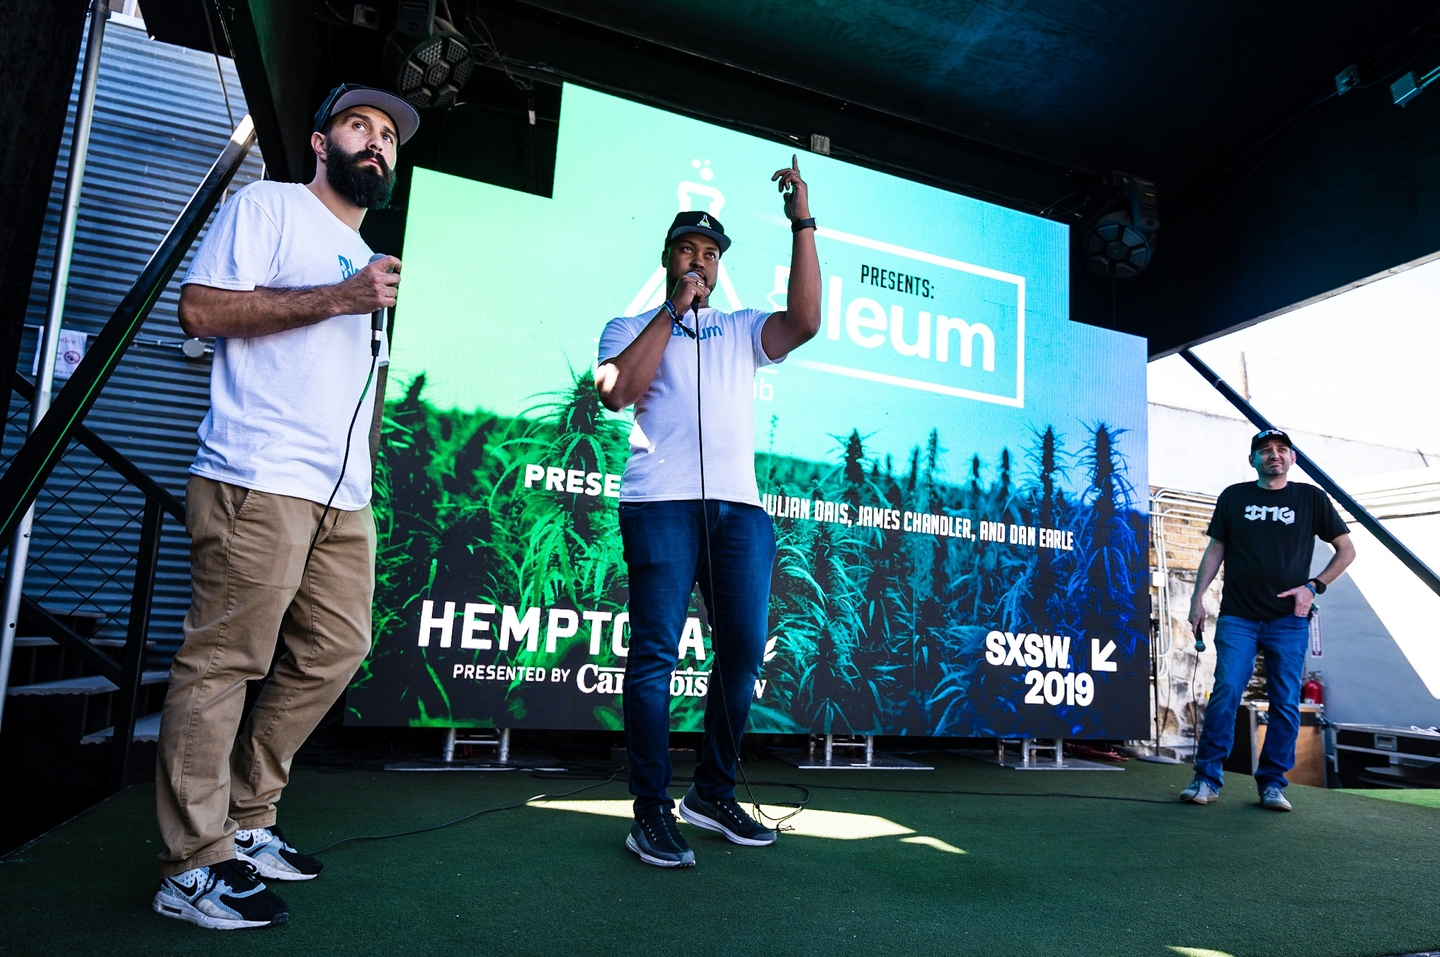 The Hemp Today activation featured panel discussions with professional athletes & leading industry experts, film screenings, live music, product launches, and more. Photo by Ann Alva Wieding